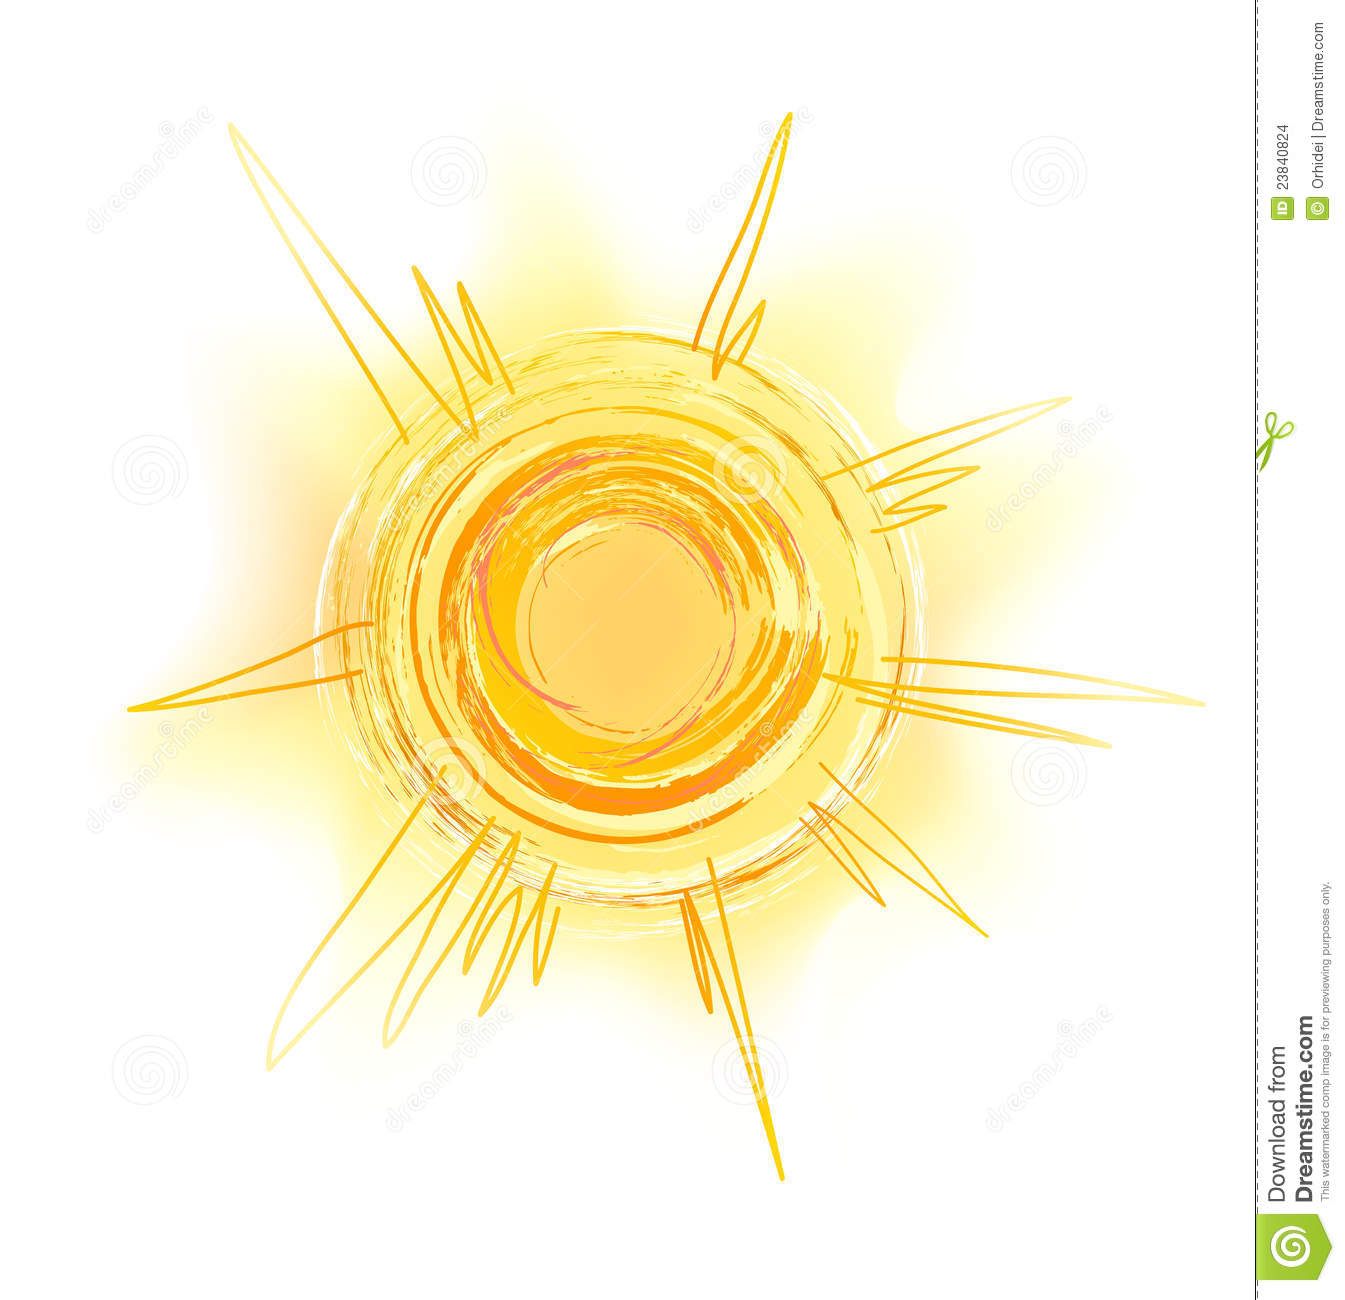 Uncategorized Drawing The Sun drawing yellow sun with rays sketch stock vector image 23840824 sketch